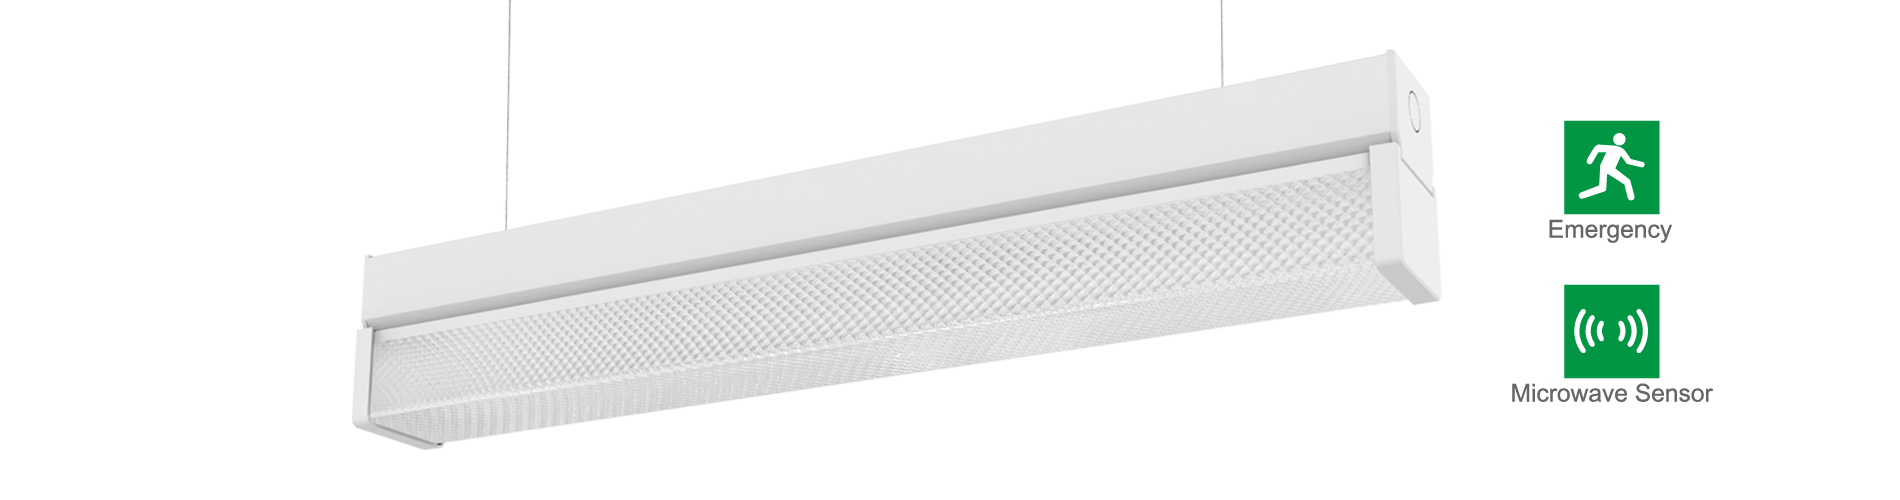 T8 diffused led batten